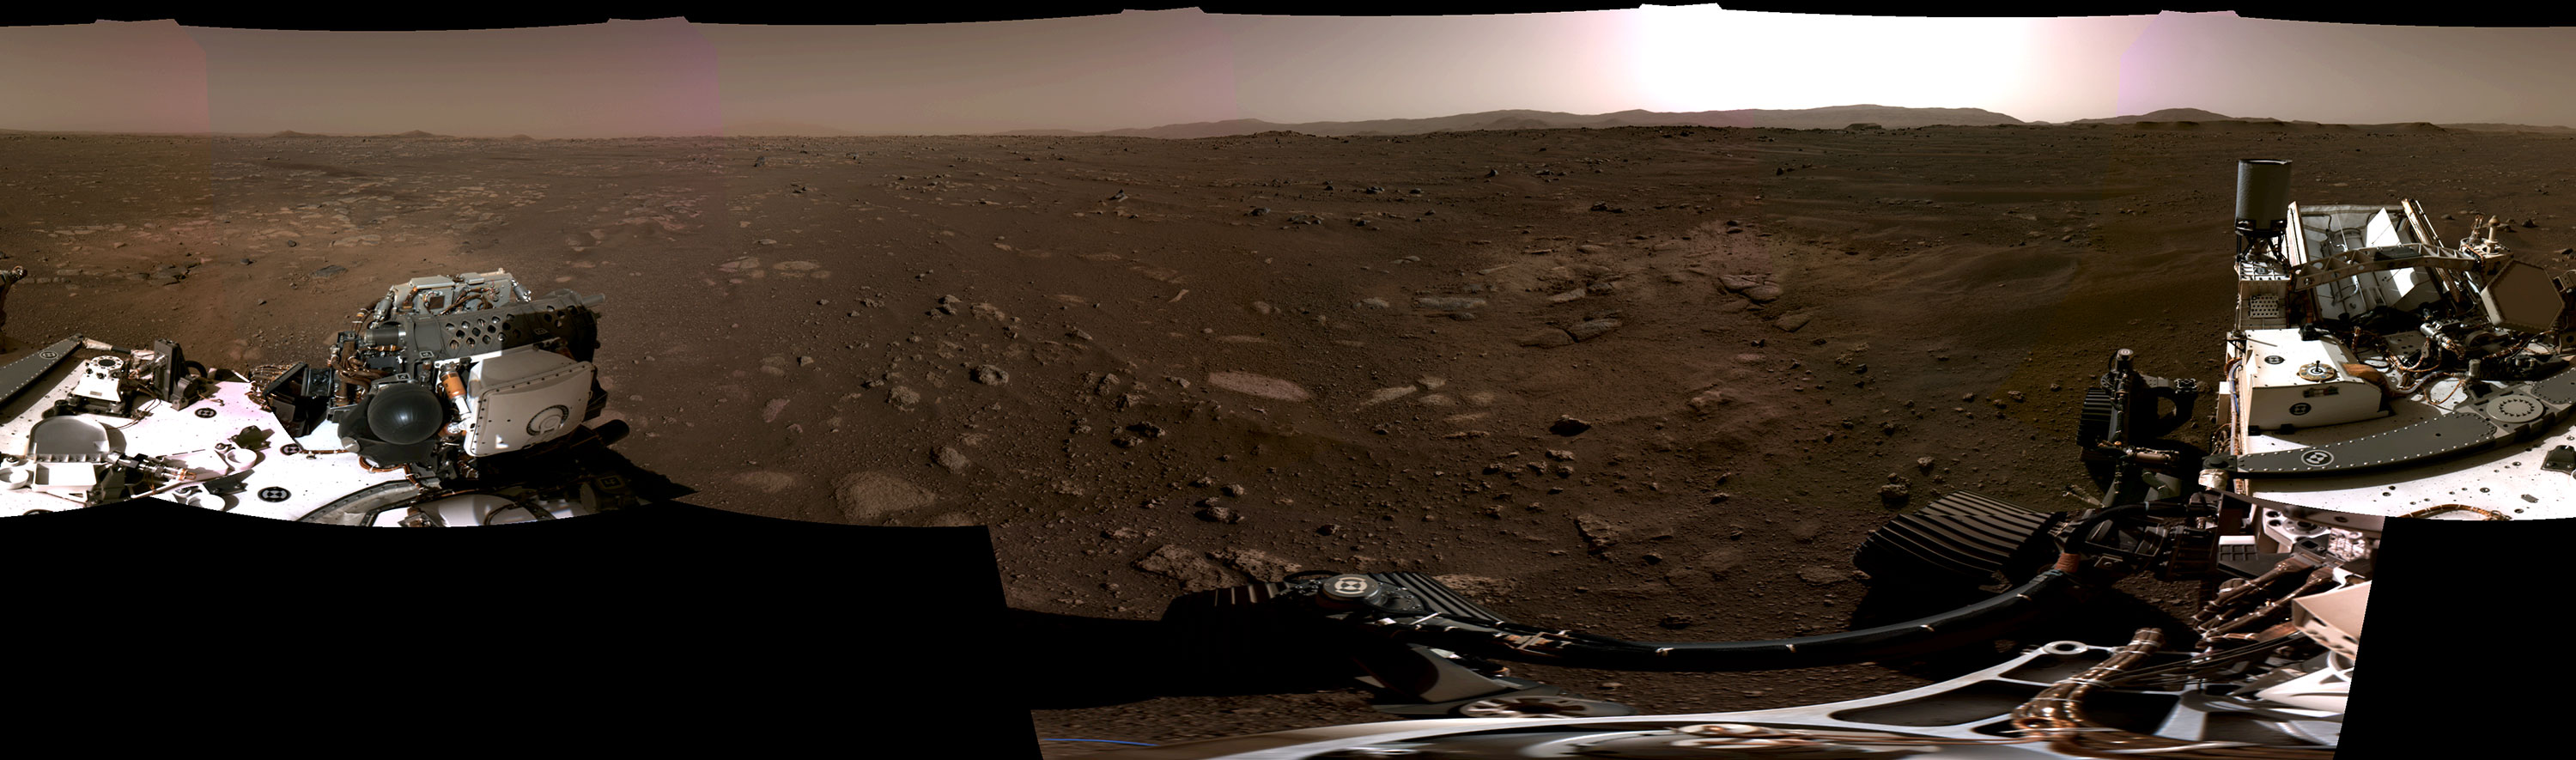 NASA's Mars Perseverance Rover Provides First Audio Recording on Mars